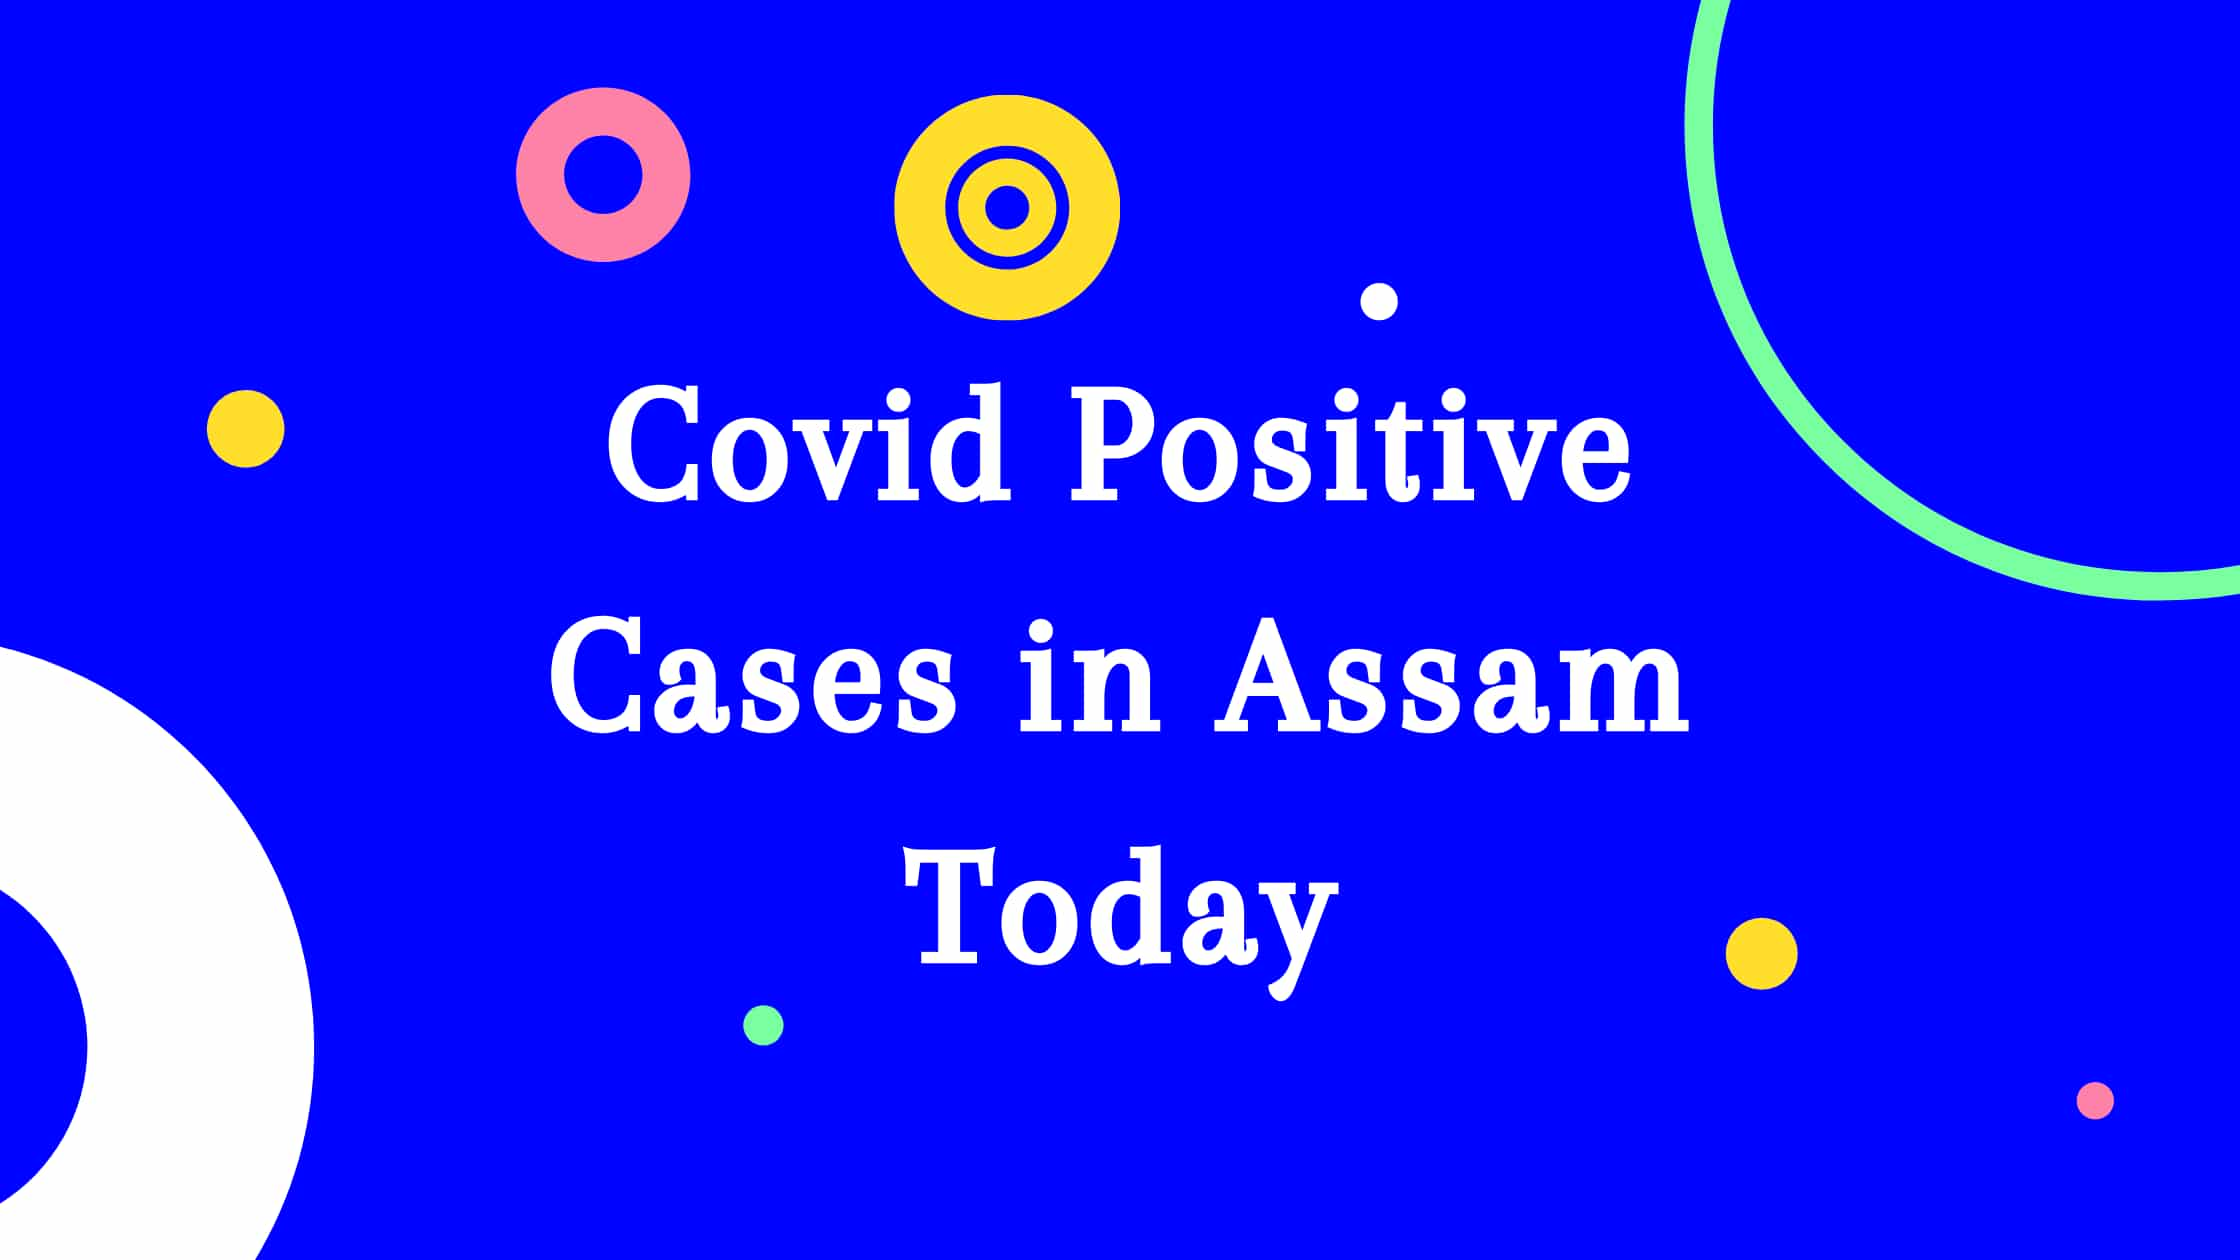 Covid cases in Assam